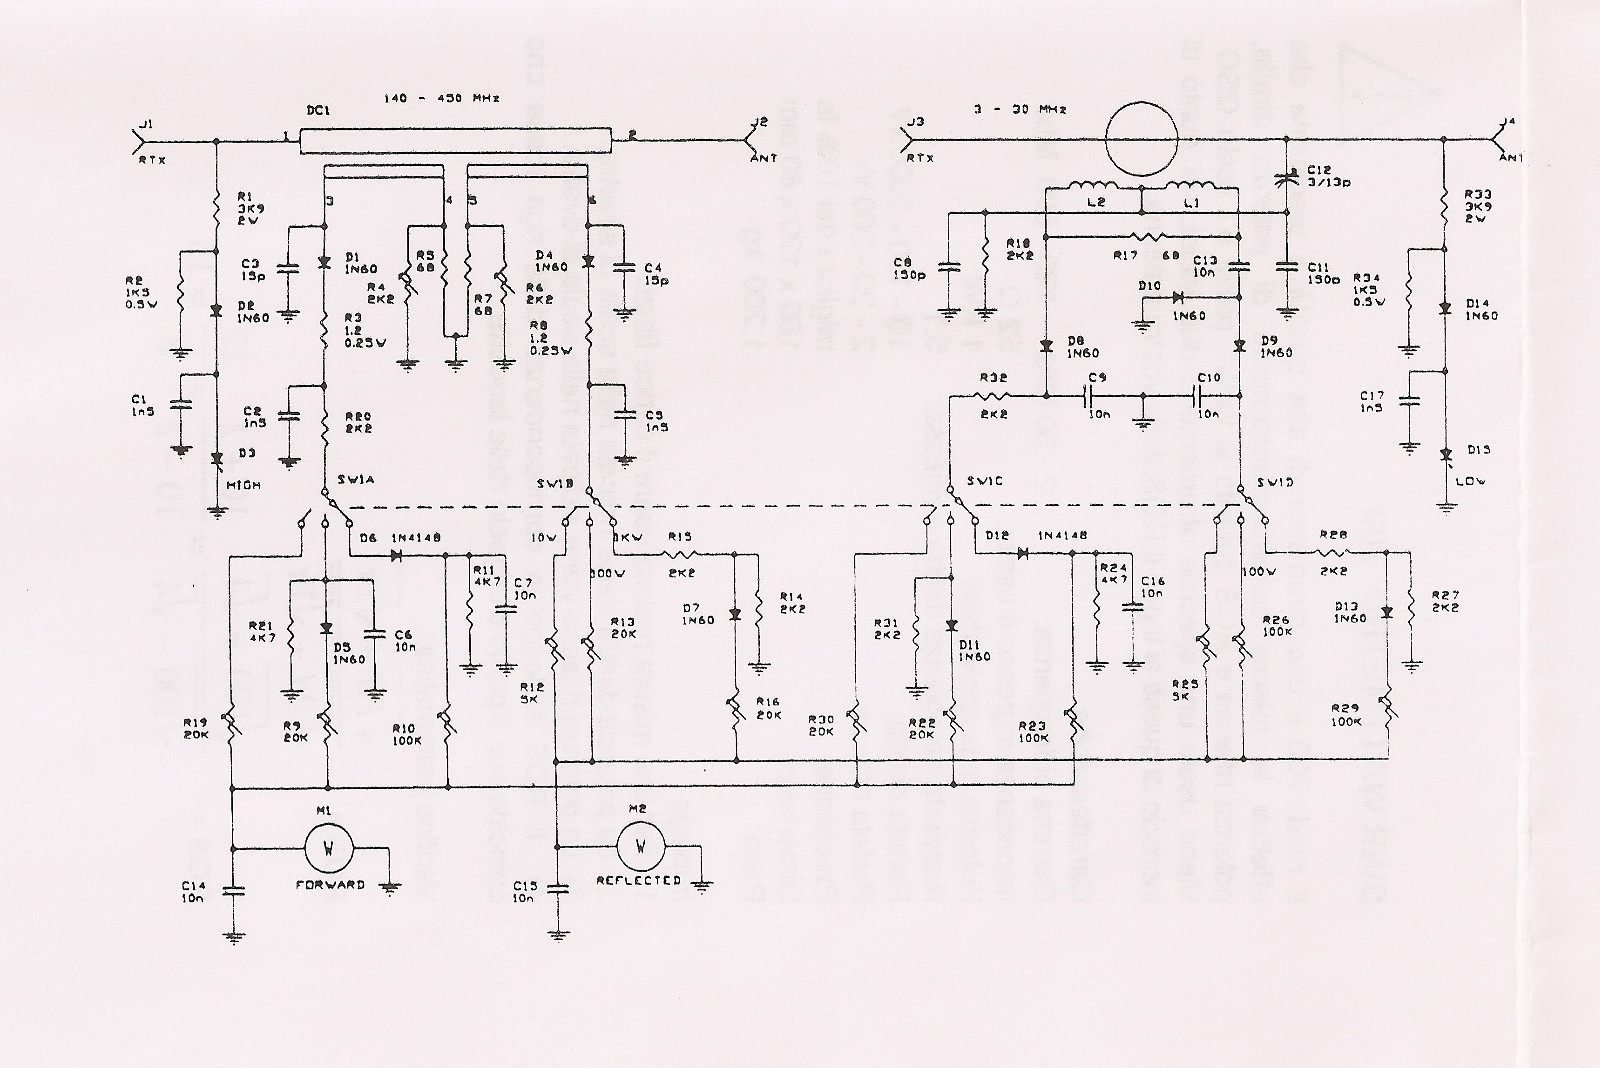 Top Circuits Page 172 Opamposcillator Oscillatorcircuit Signalprocessing Circuit Swr Power Meter